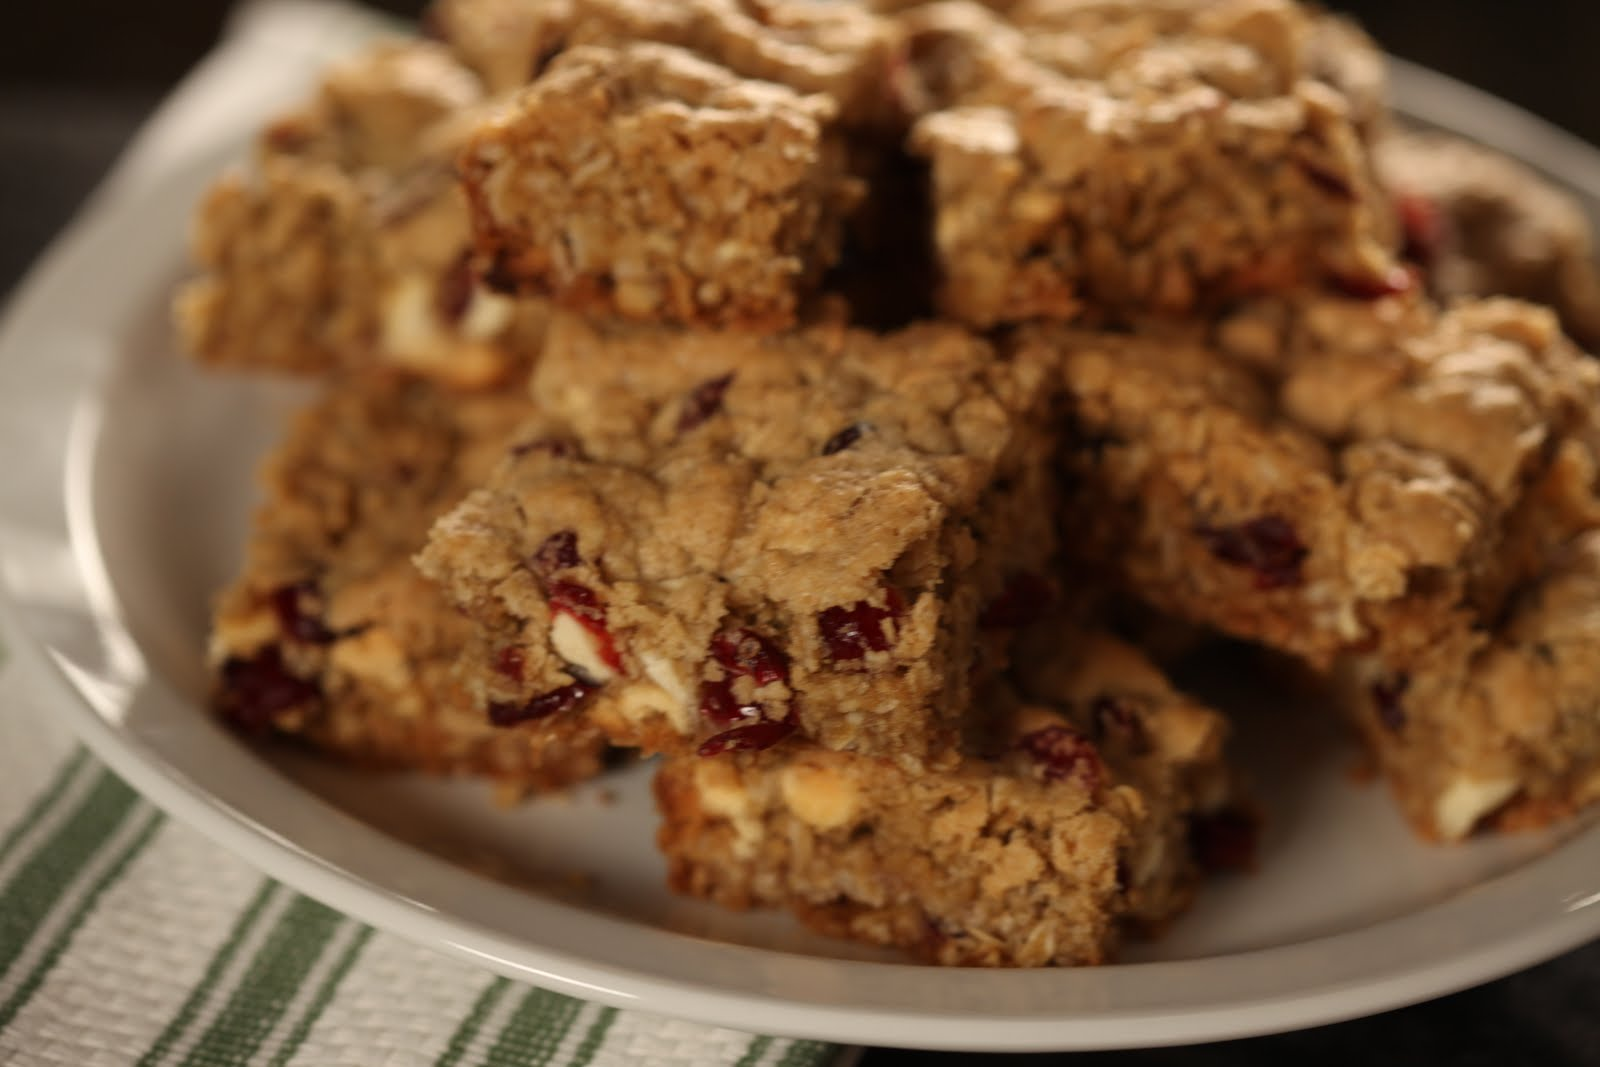 Bo's Bowl: Oatmeal Cranberry White Chocolate Chip Cookie Bars